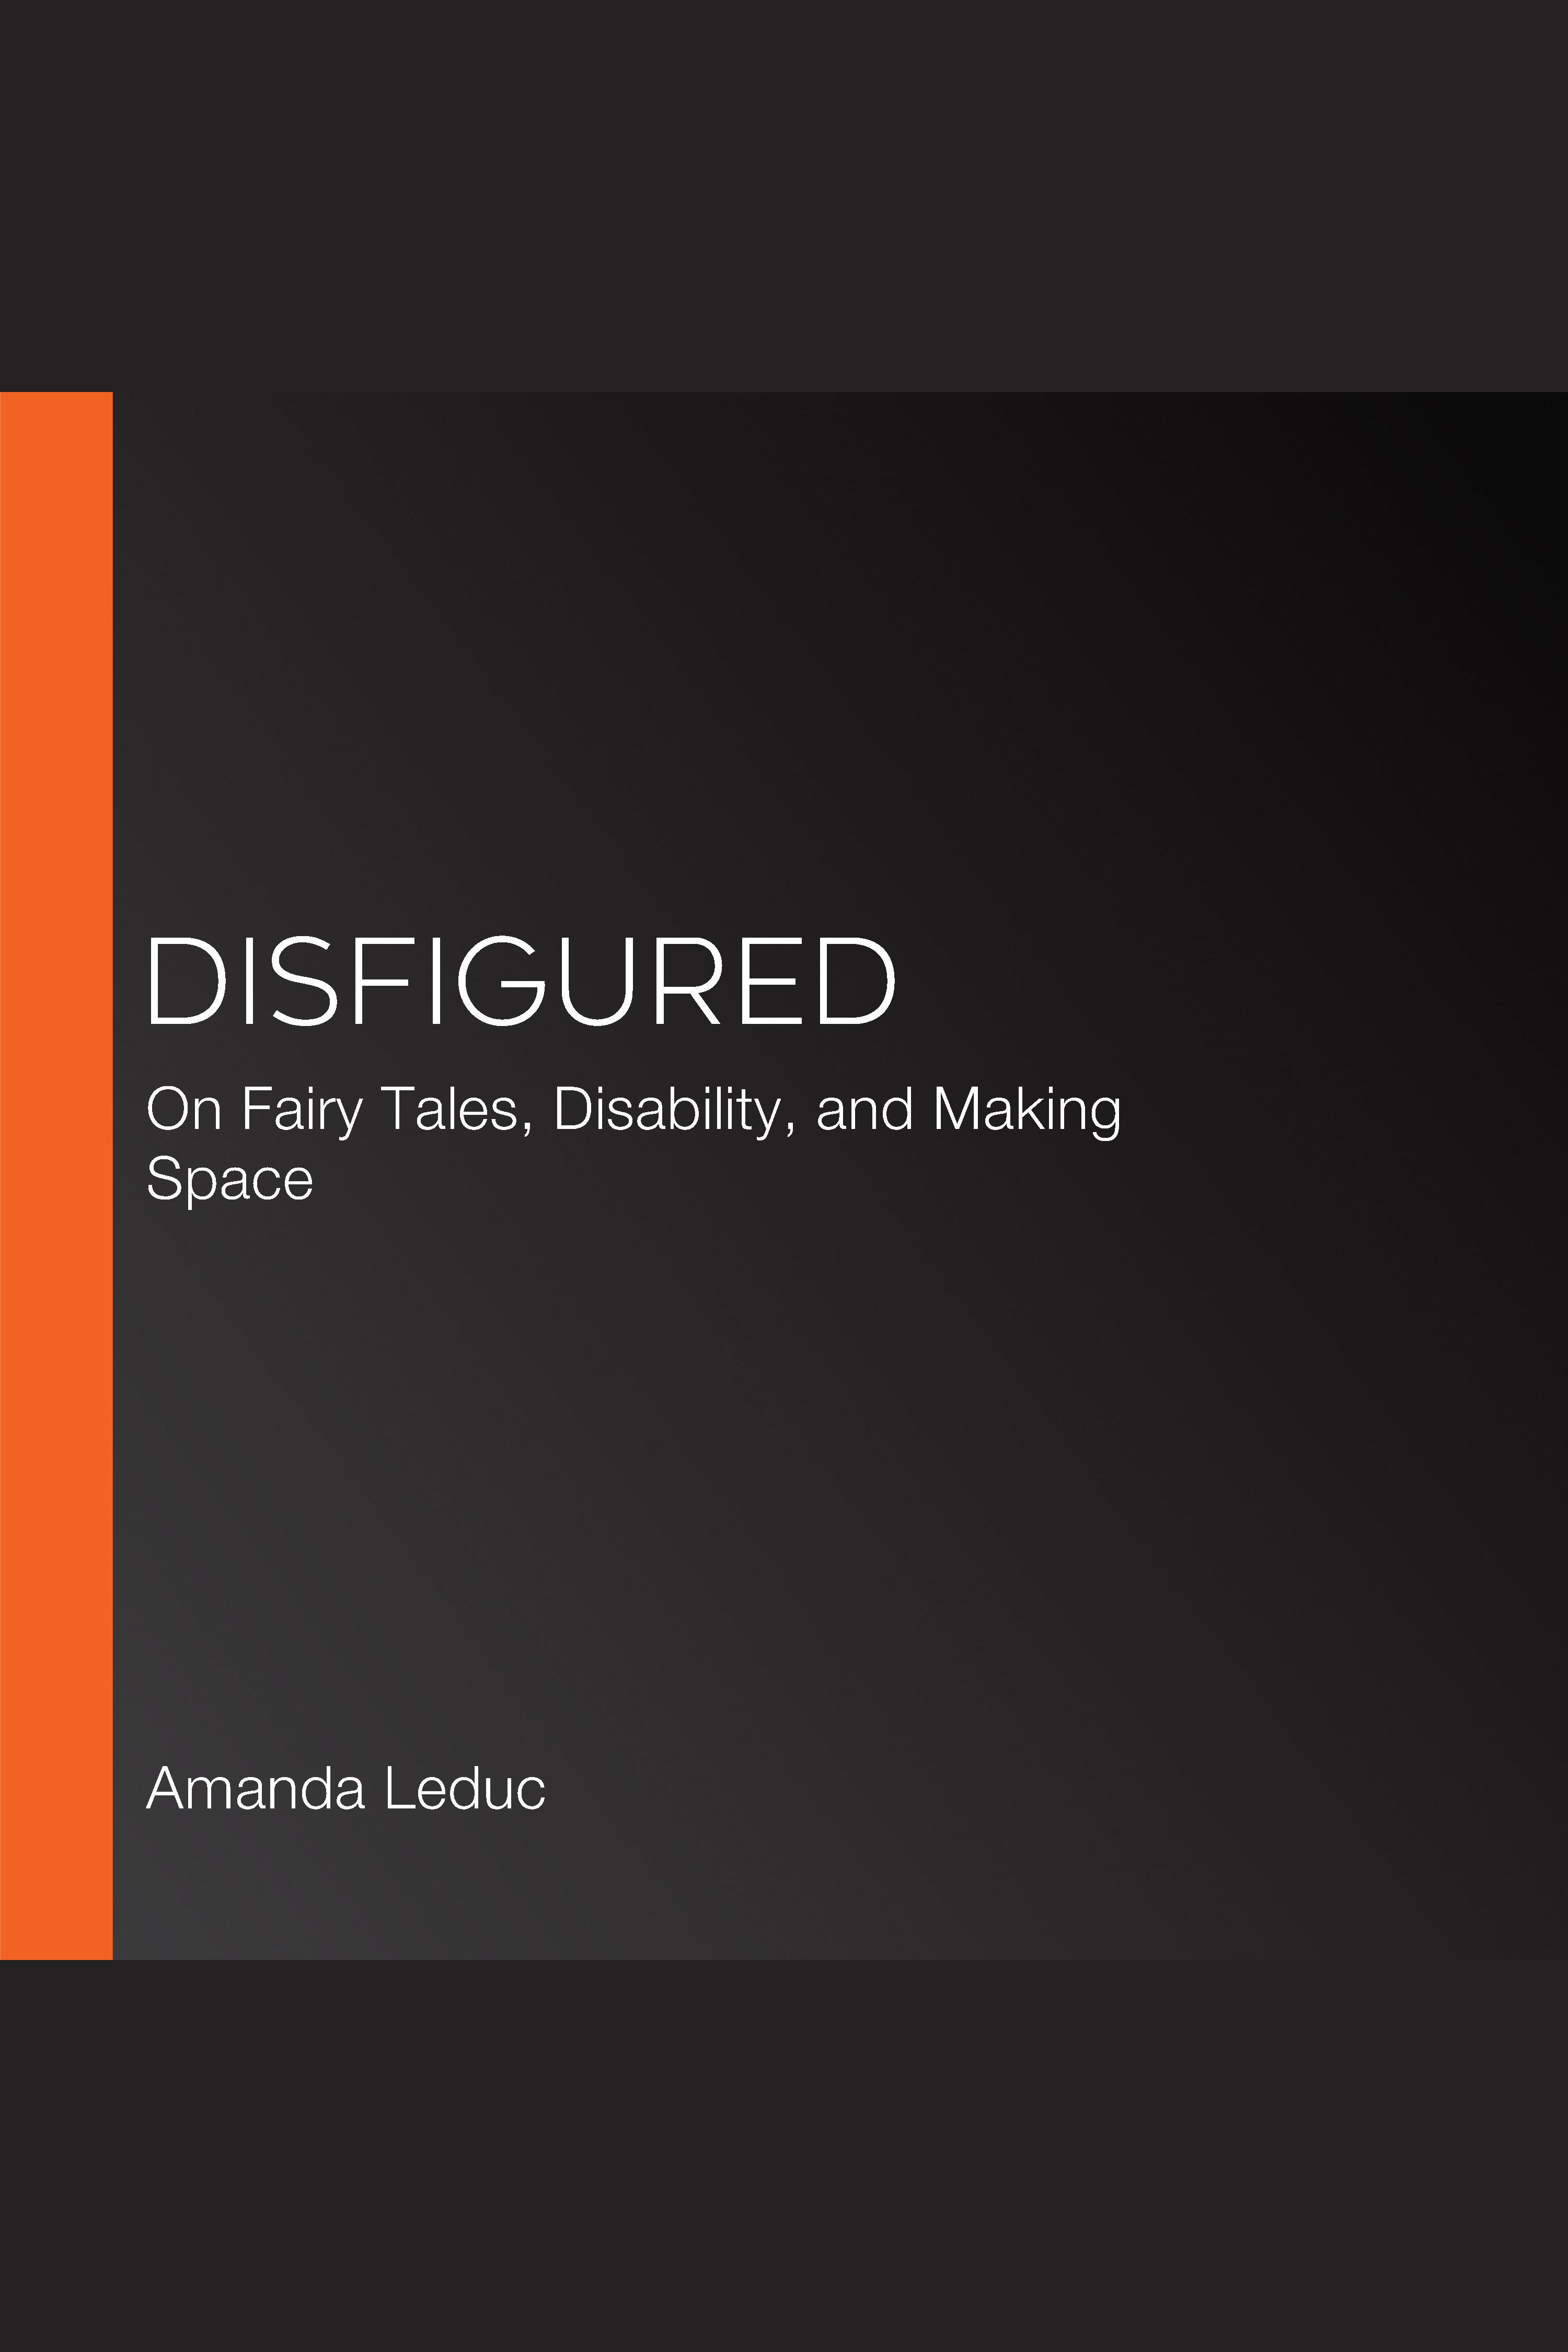 Disfigured On Fairy Tales, Disability, and Making Space